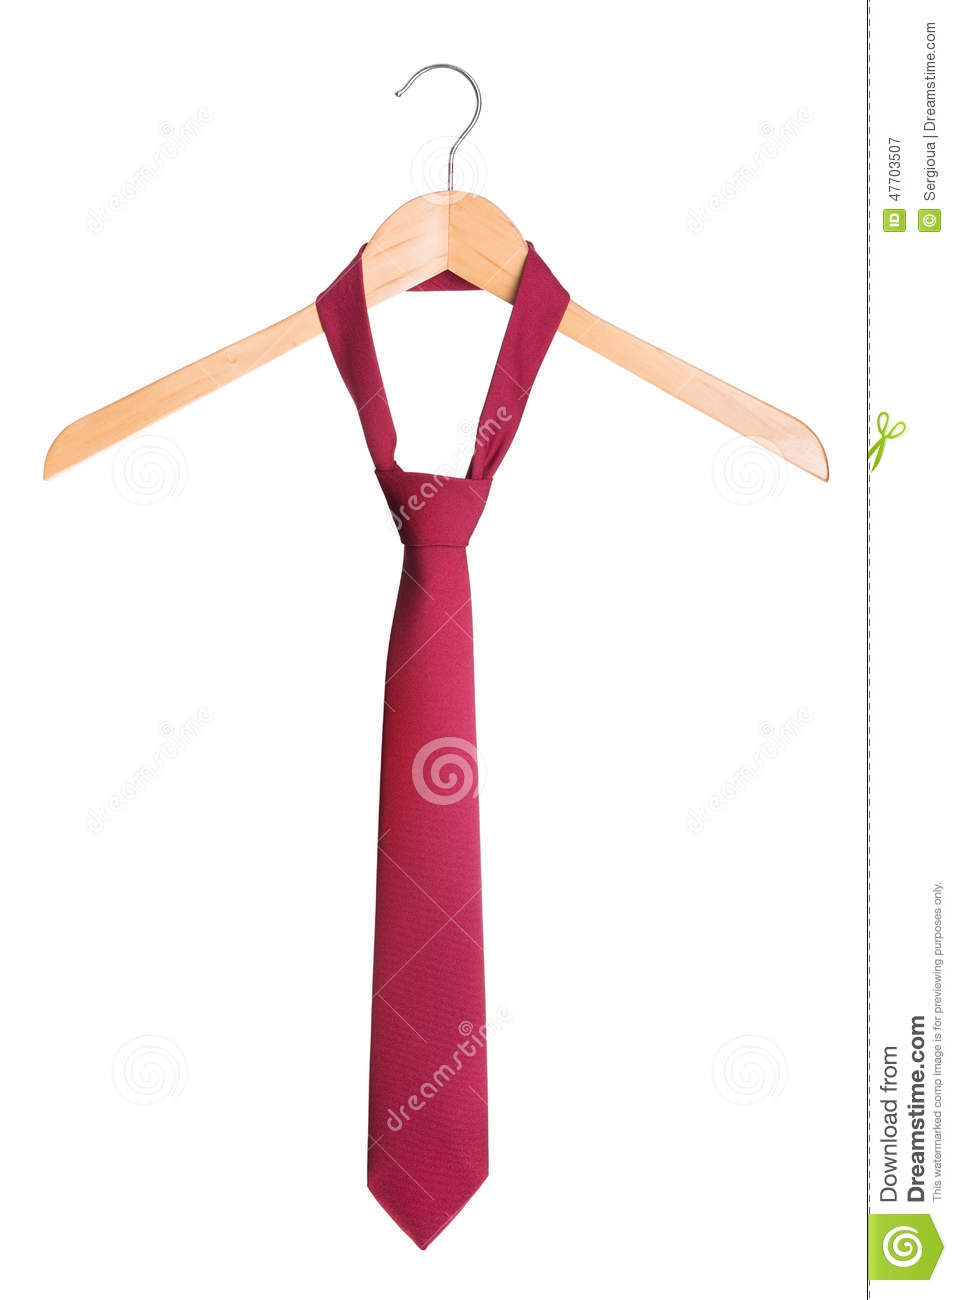 Stylish Men S Fashion Tie On A Hanger On A White Background